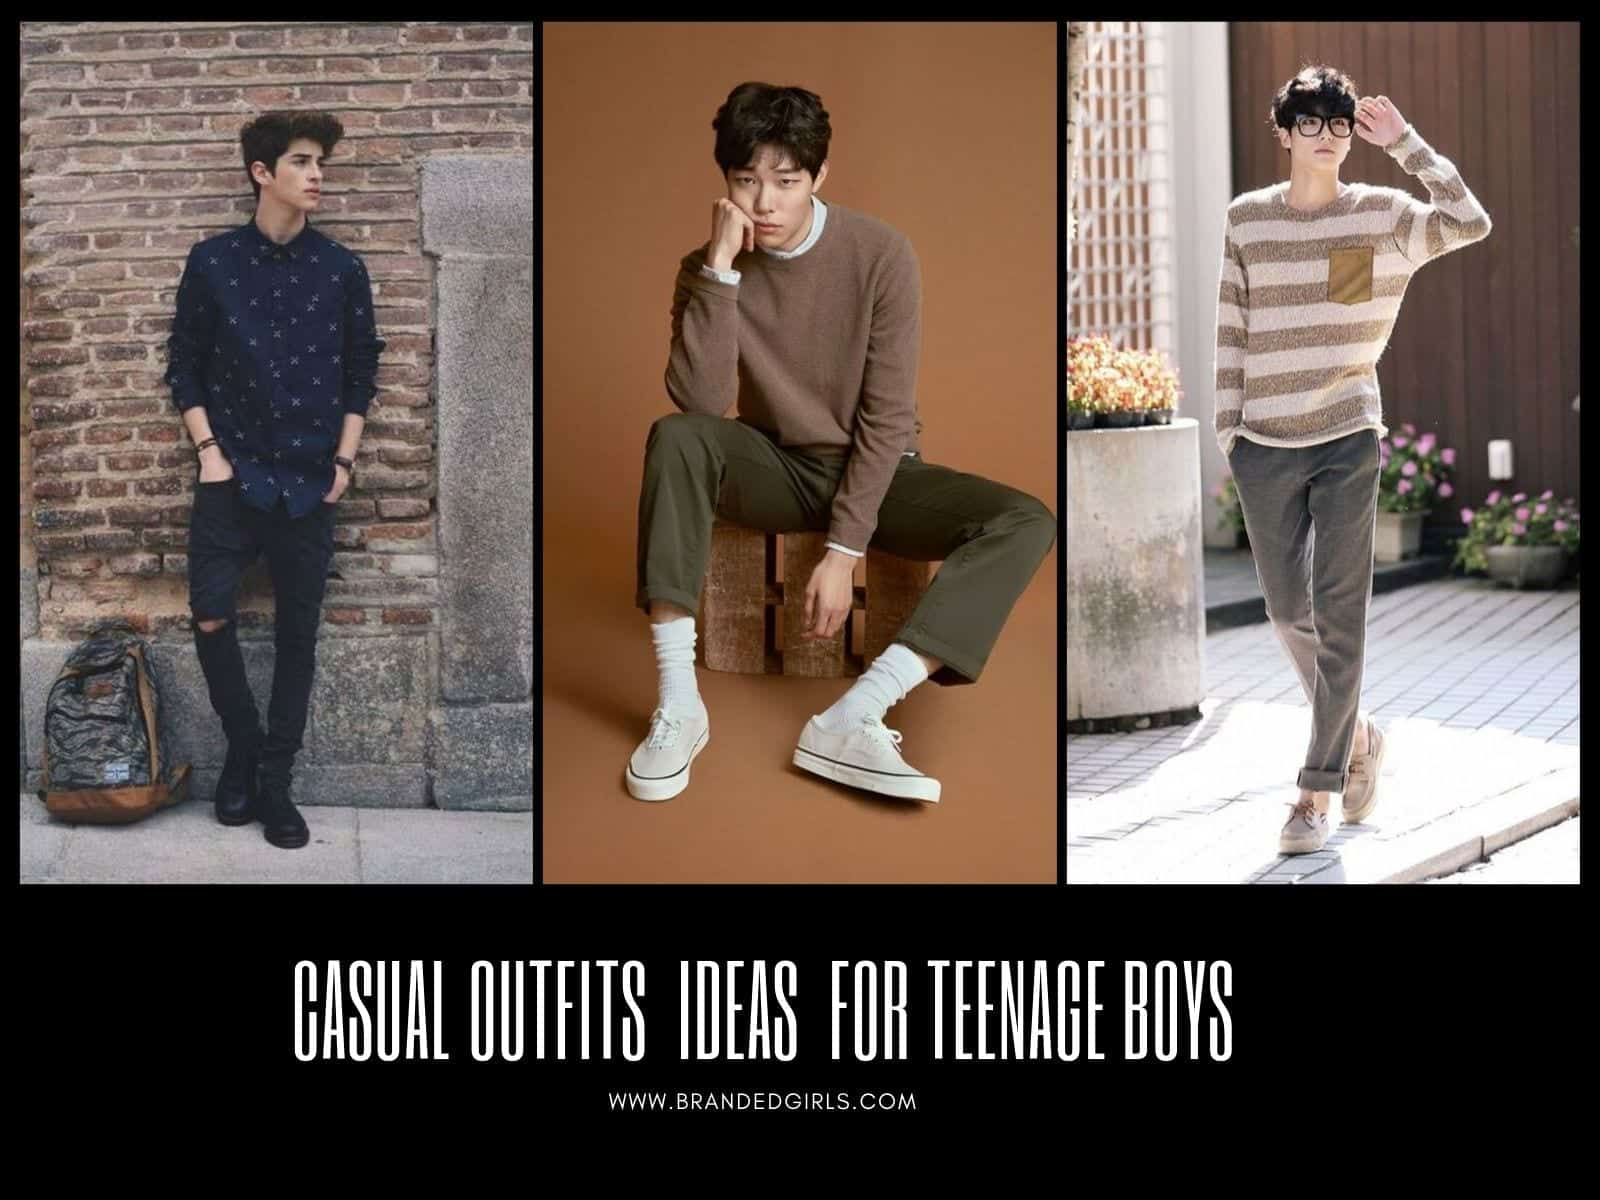 Casual-Outfits-for-Teenage-Boys Casual Fashion Ideas - 20 Casual Outfits For Teenage Boys